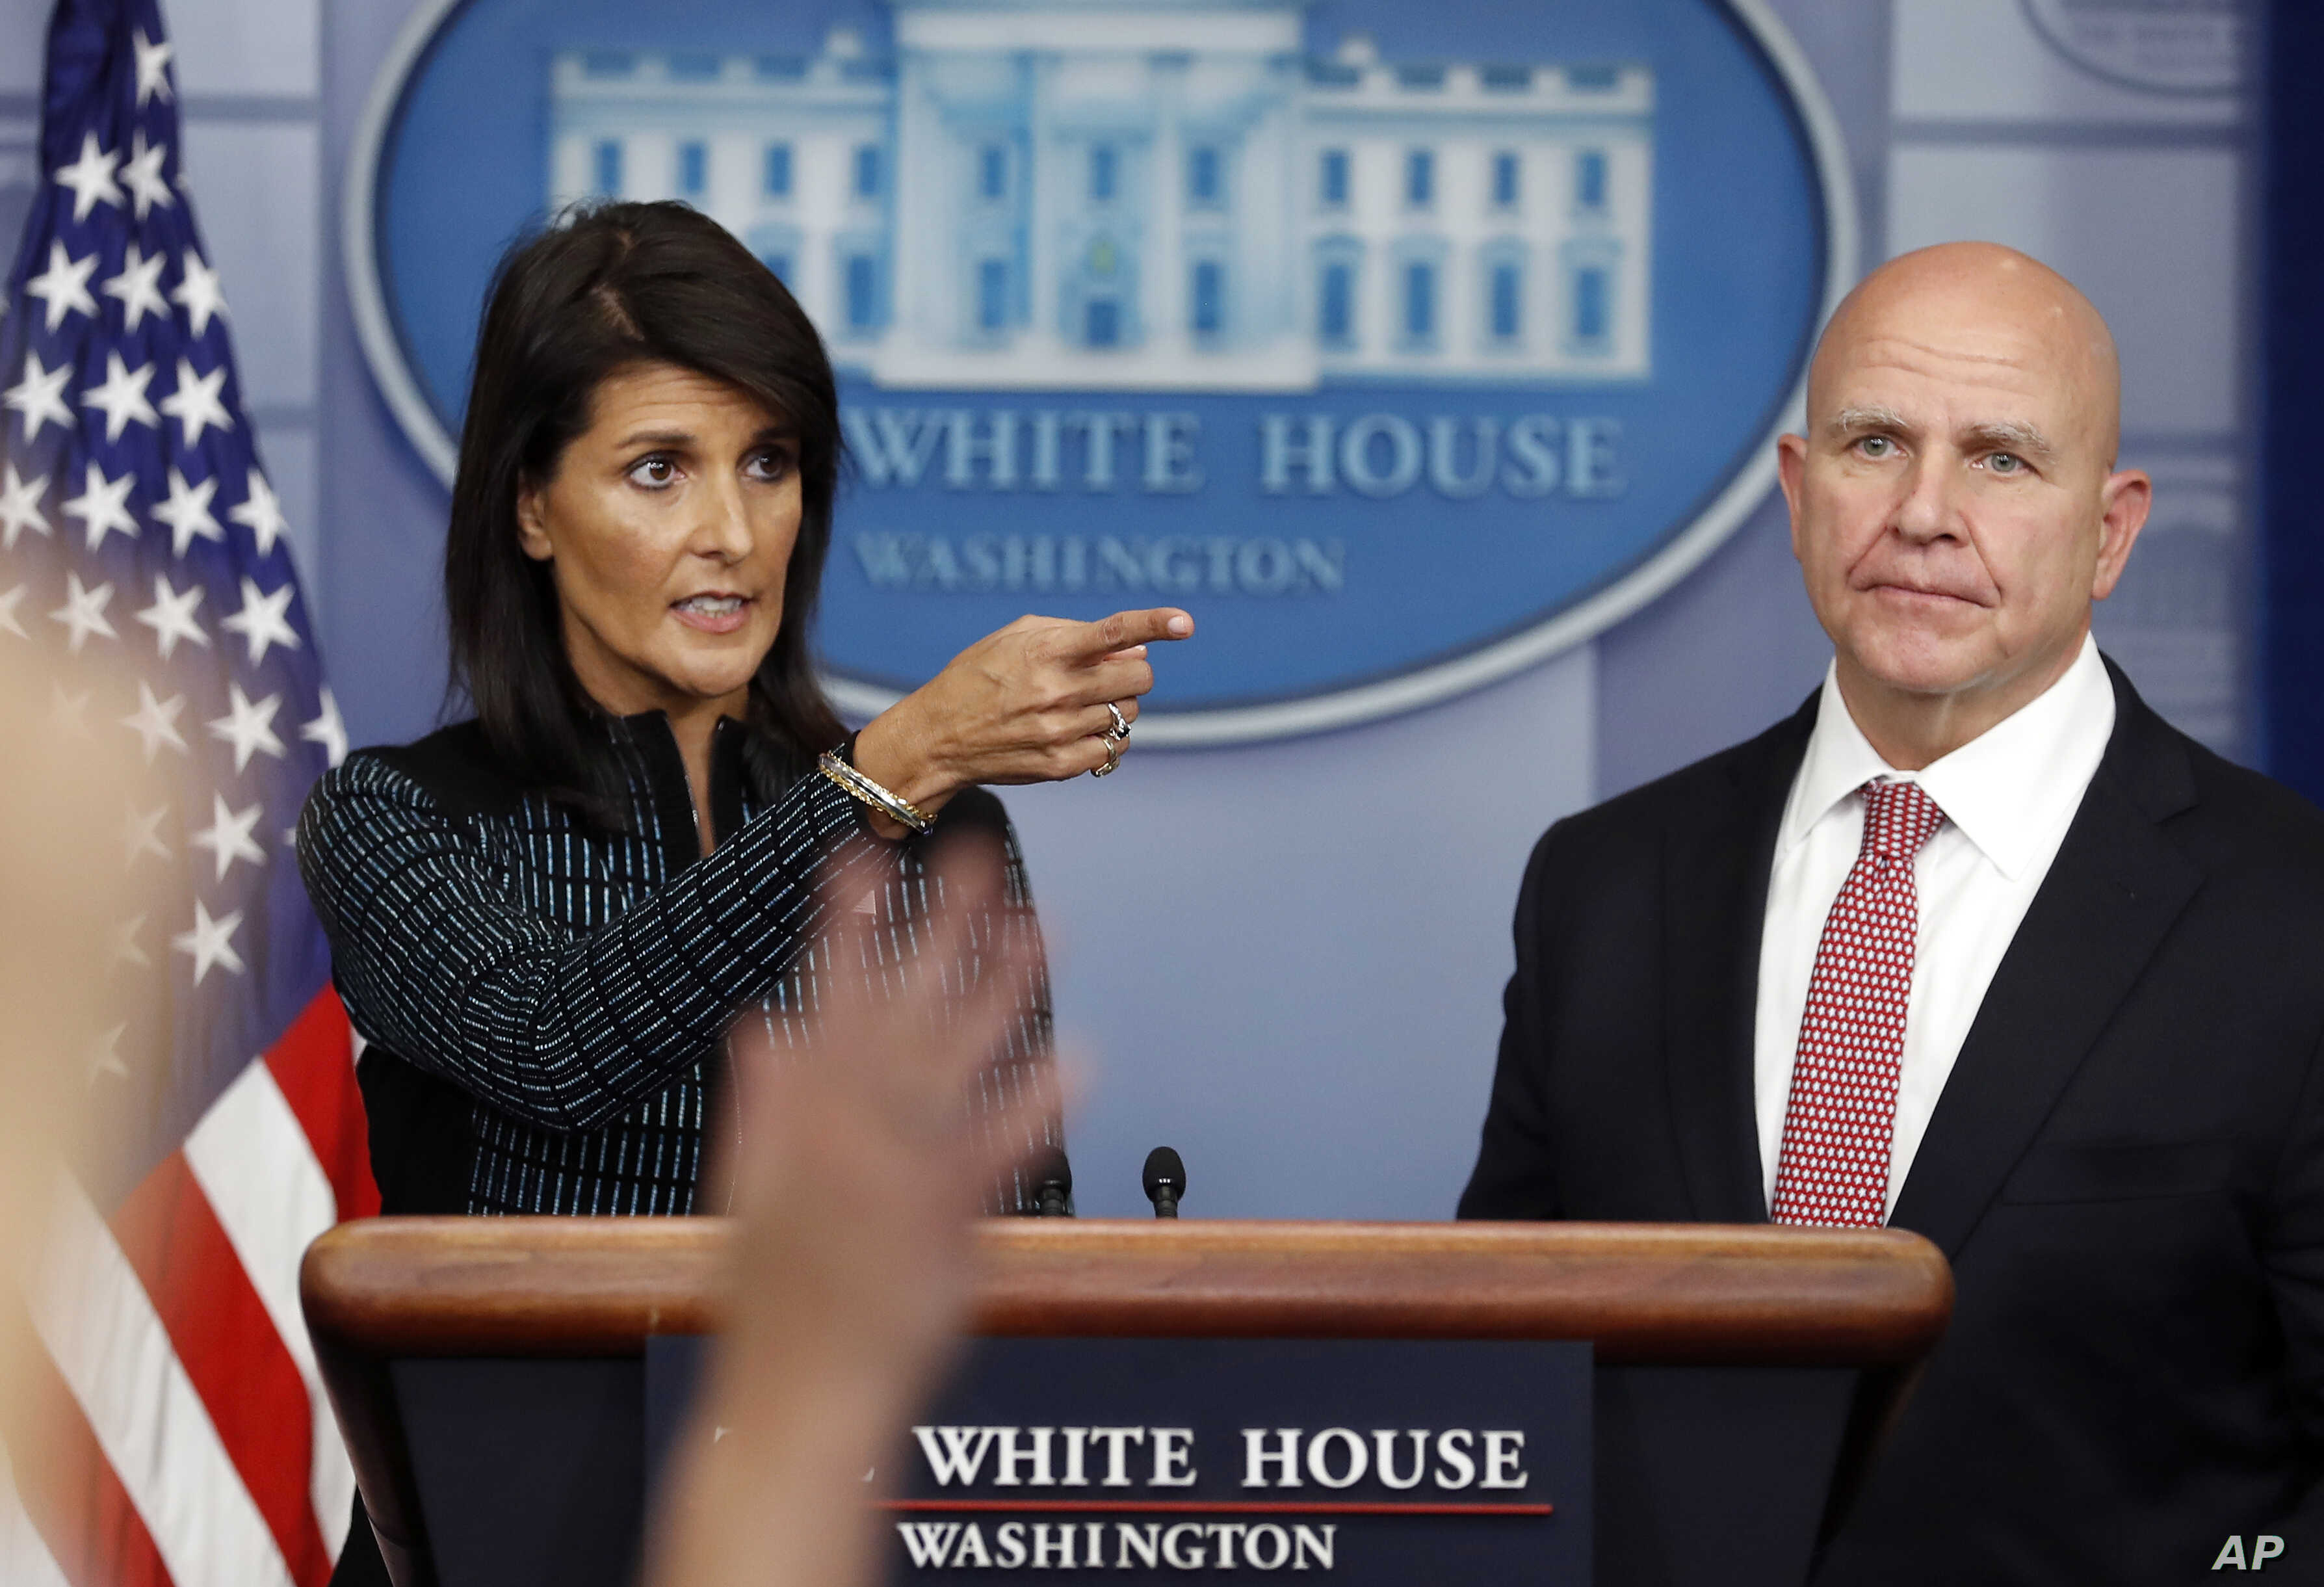 U.S. Ambassador to the United Nations Nikki Haley and national security adviser H.R. McMaster participate in a news briefing at the White House, in Washington, Sept. 15, 2017.